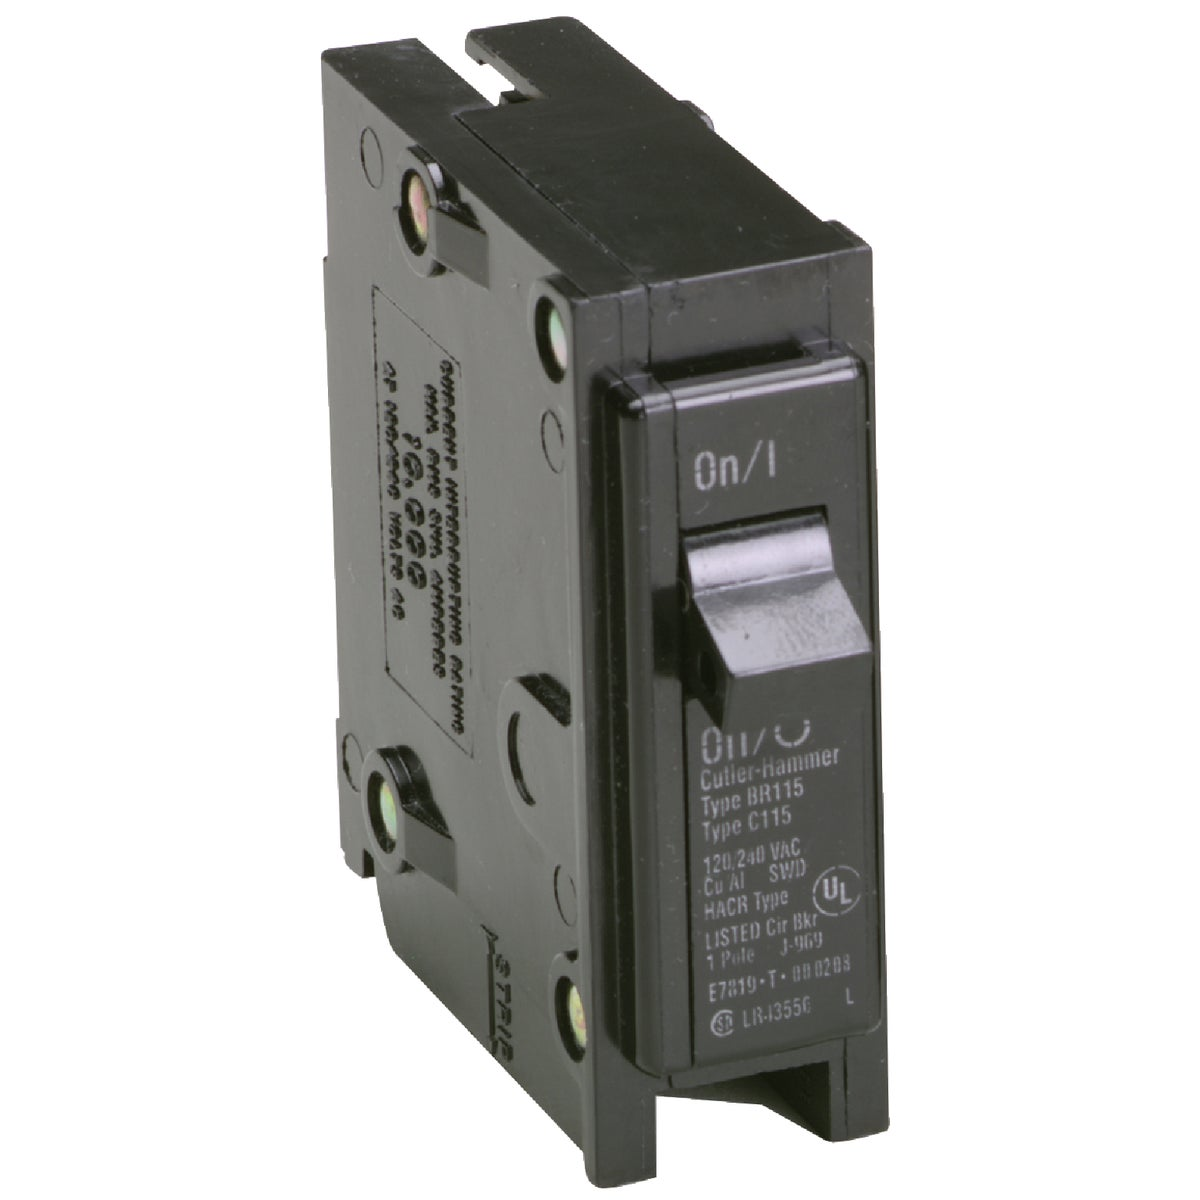 20A SP CIRCUIT BREAKER - BR120 by Eaton Corporation